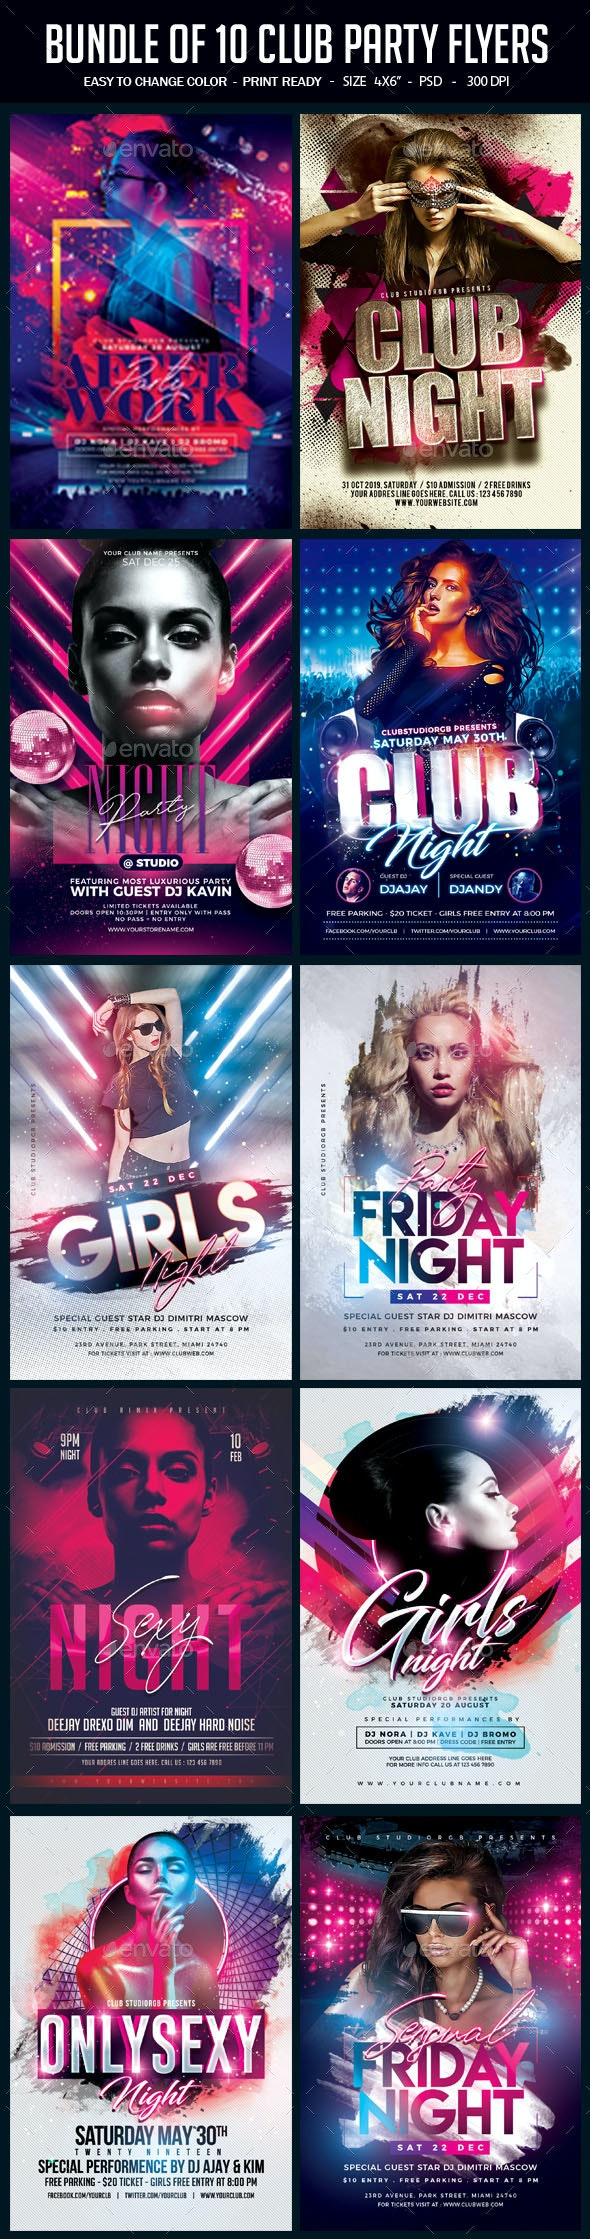 Bundle of 10 Club Party Flyers - Clubs & Parties Events